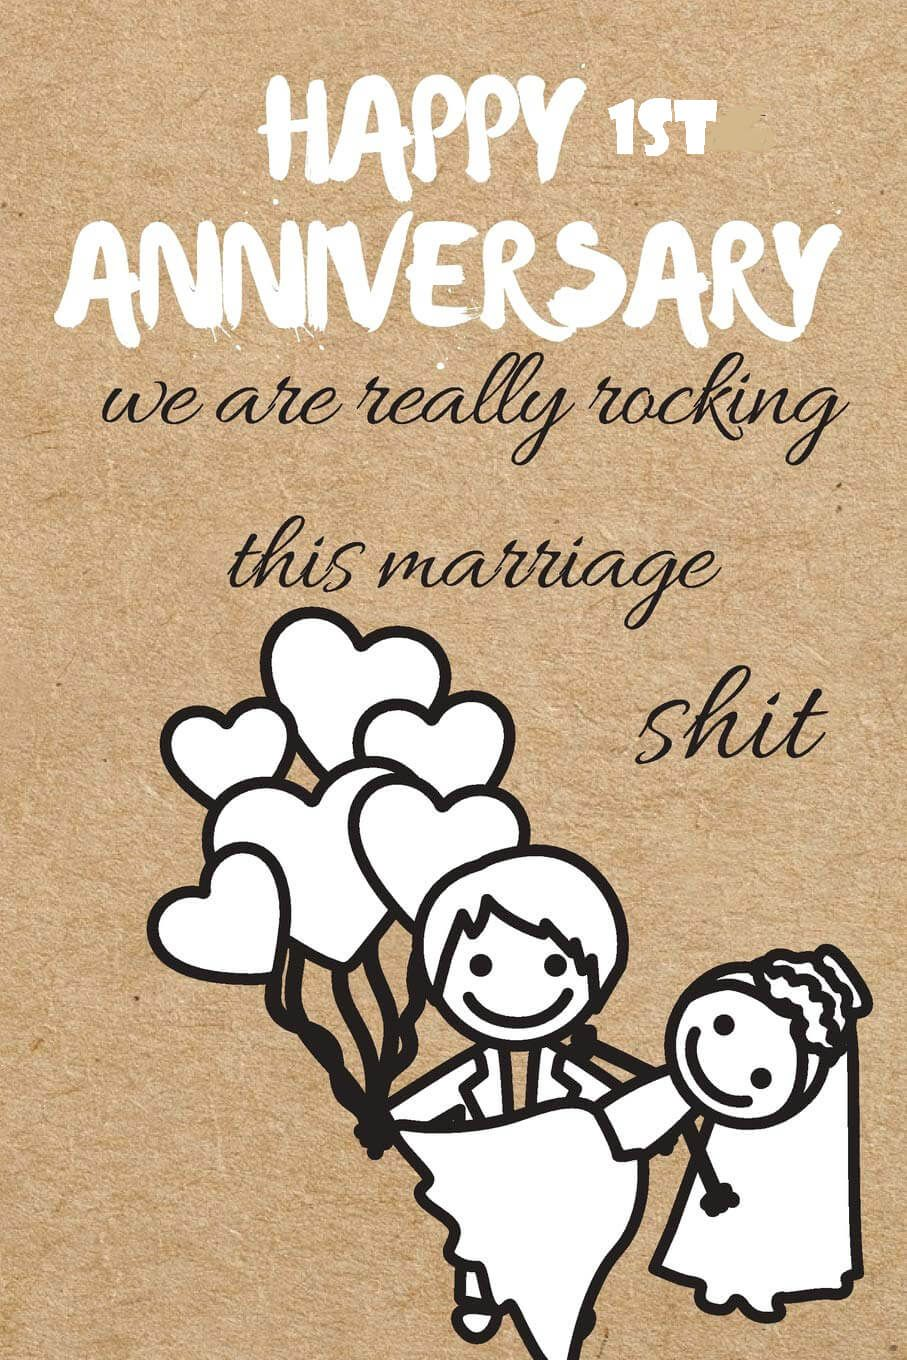 1st Anniversary Images for Couples in 2020 Happy 23rd